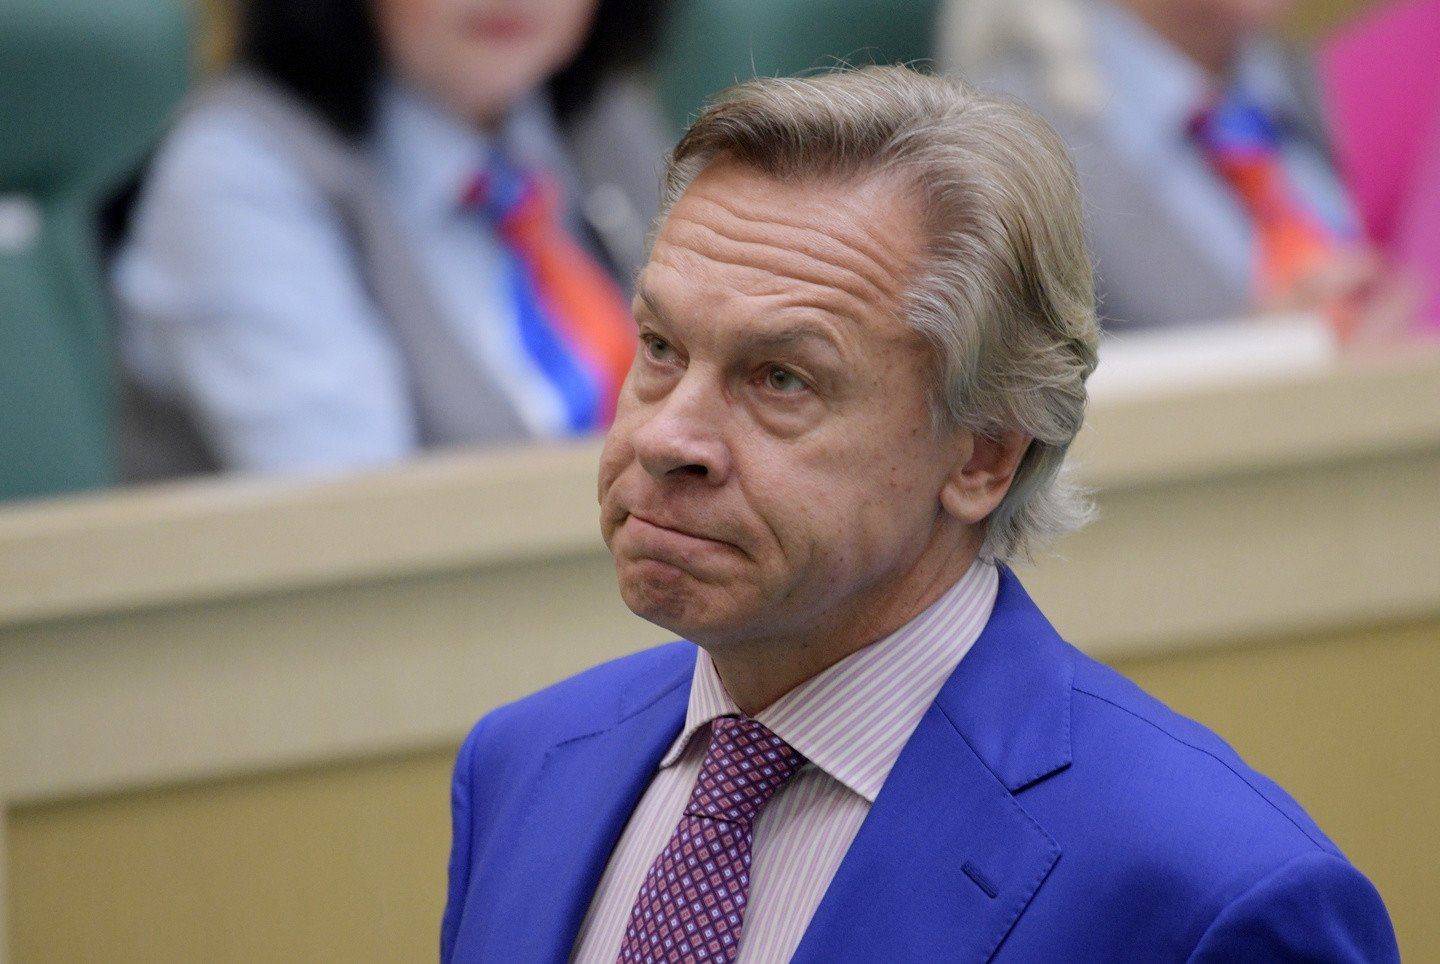 Pushkov warned Biden of possible mistakes in meeting with Putin